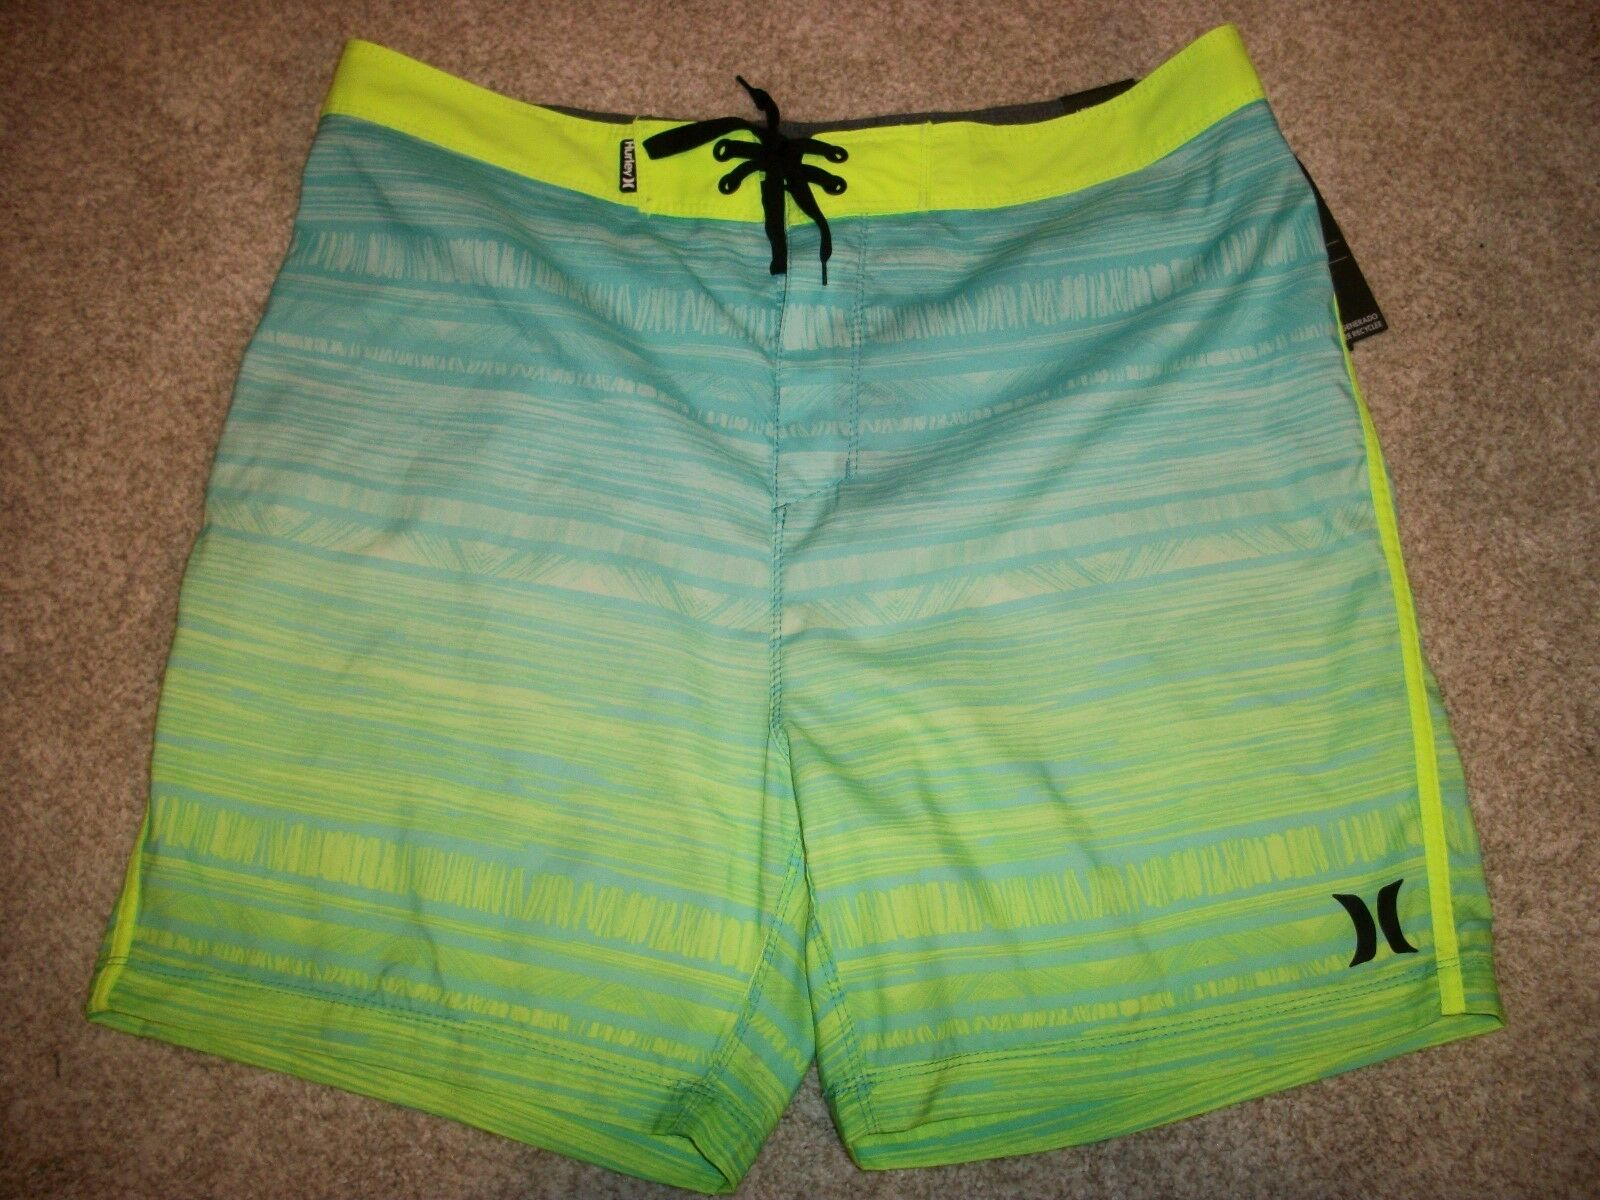 HURLEY New NWT Mens Board Shorts Swim bluee Green Yellow 38